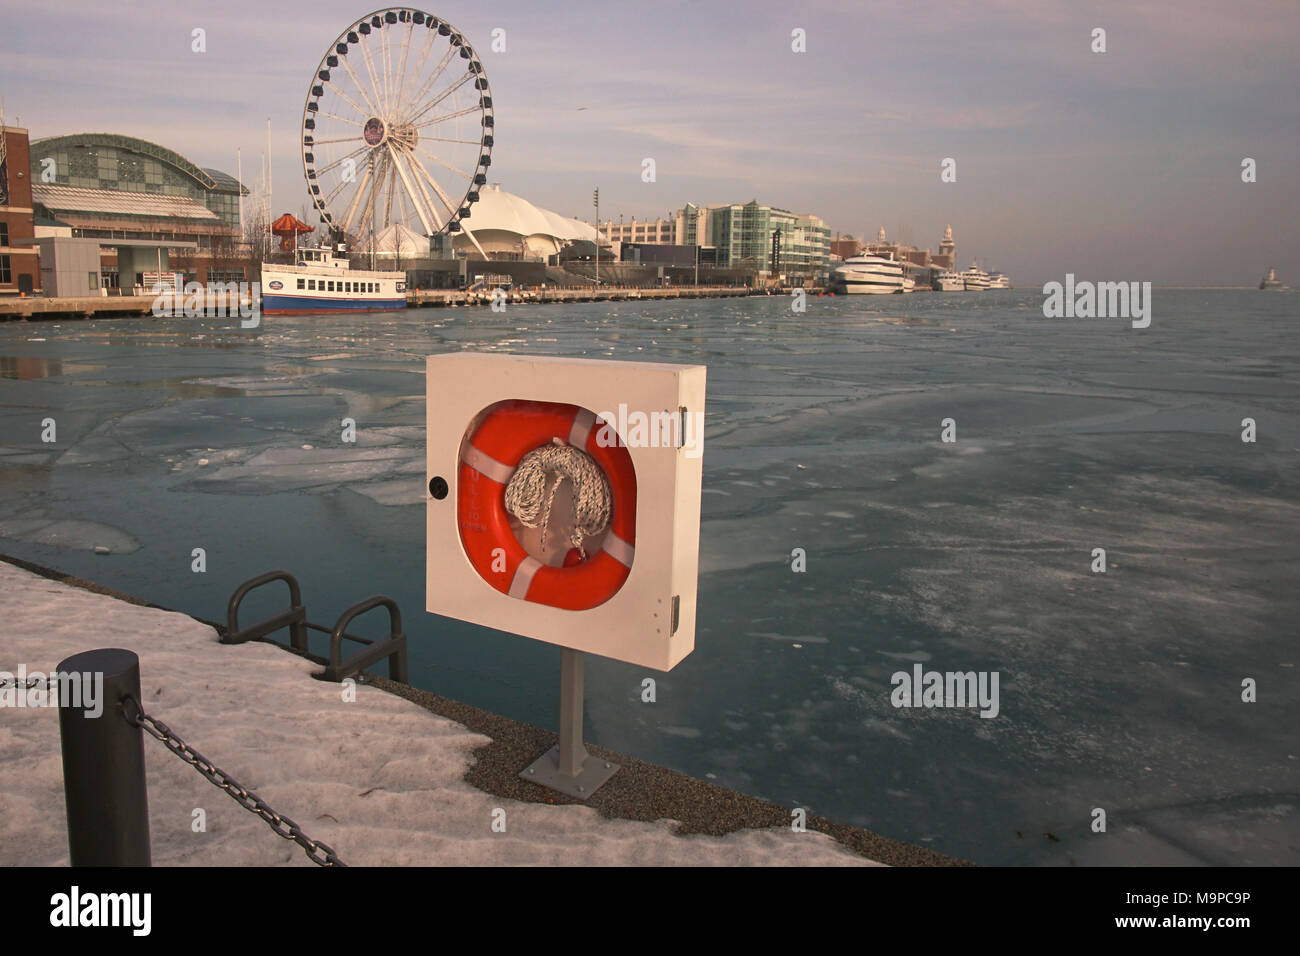 looking over the water on a winter day with view of Navy Pier and ferris wheel in distance, lifesaver device in foreground with snow on the ground - Stock Image